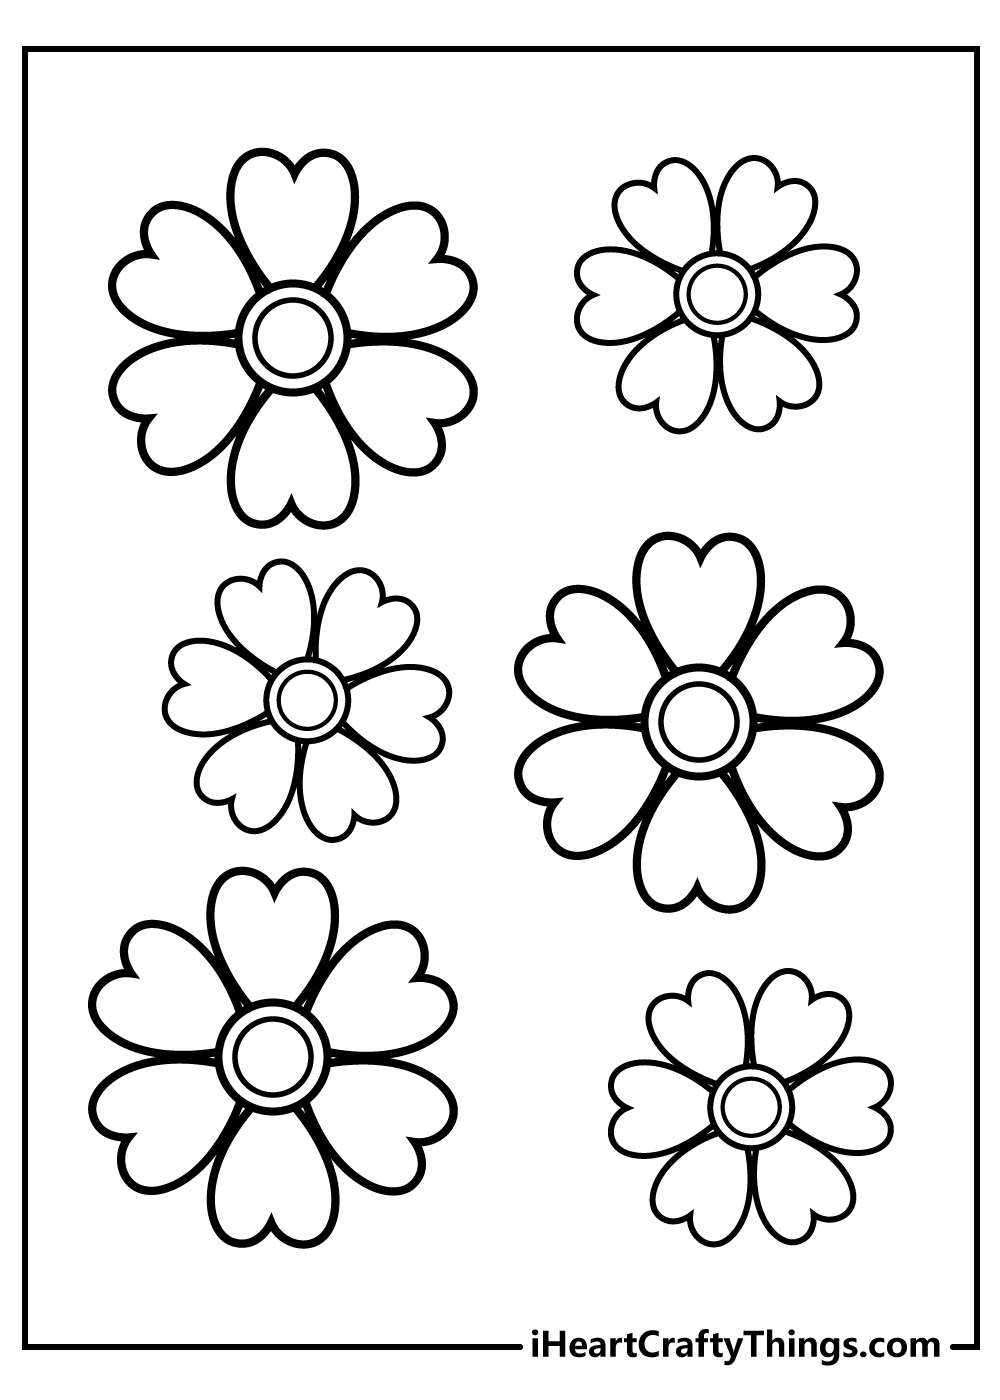 four-leaf clover simple flower coloring pages free printable